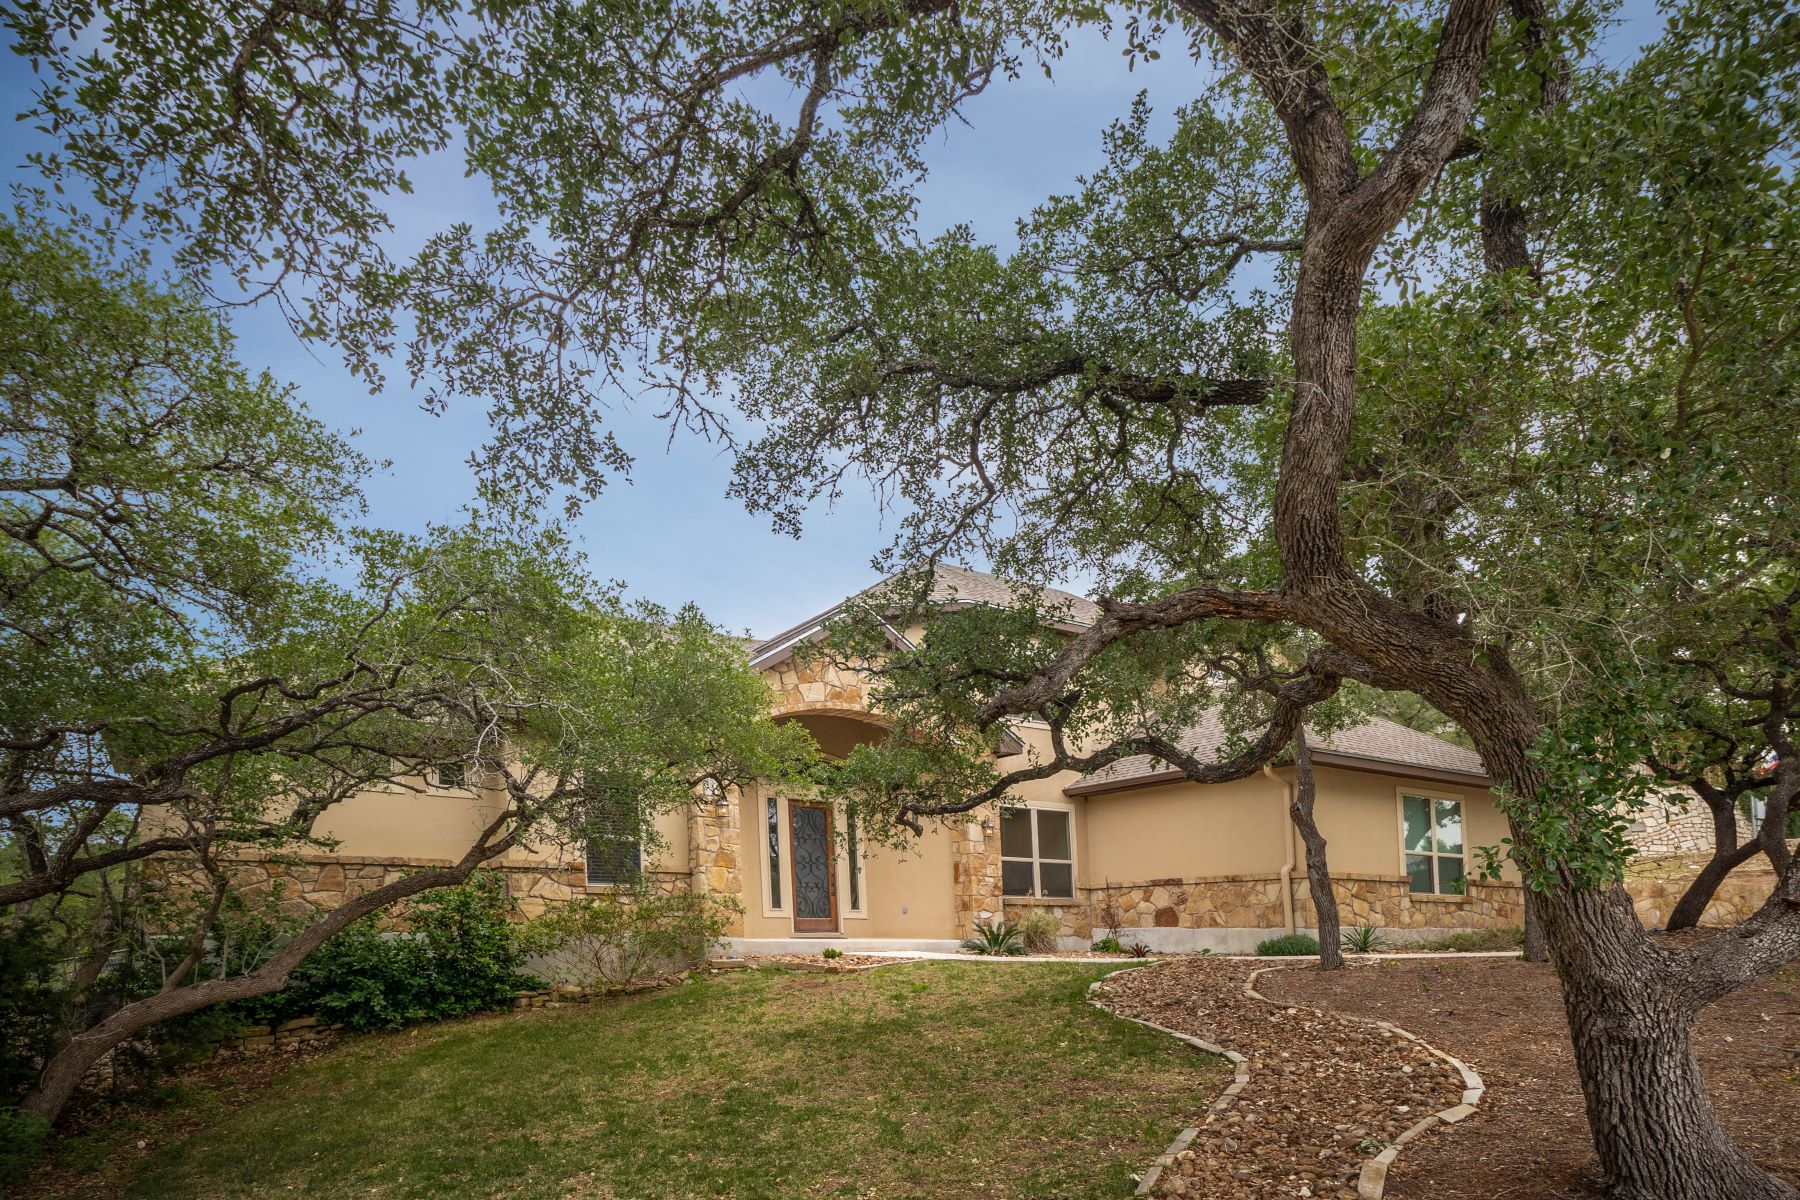 Single Family Homes for Sale at Custom Home with Views of Greenbelt and Nature Area 1742 Mountain Springs, Canyon Lake, Texas 78133 United States